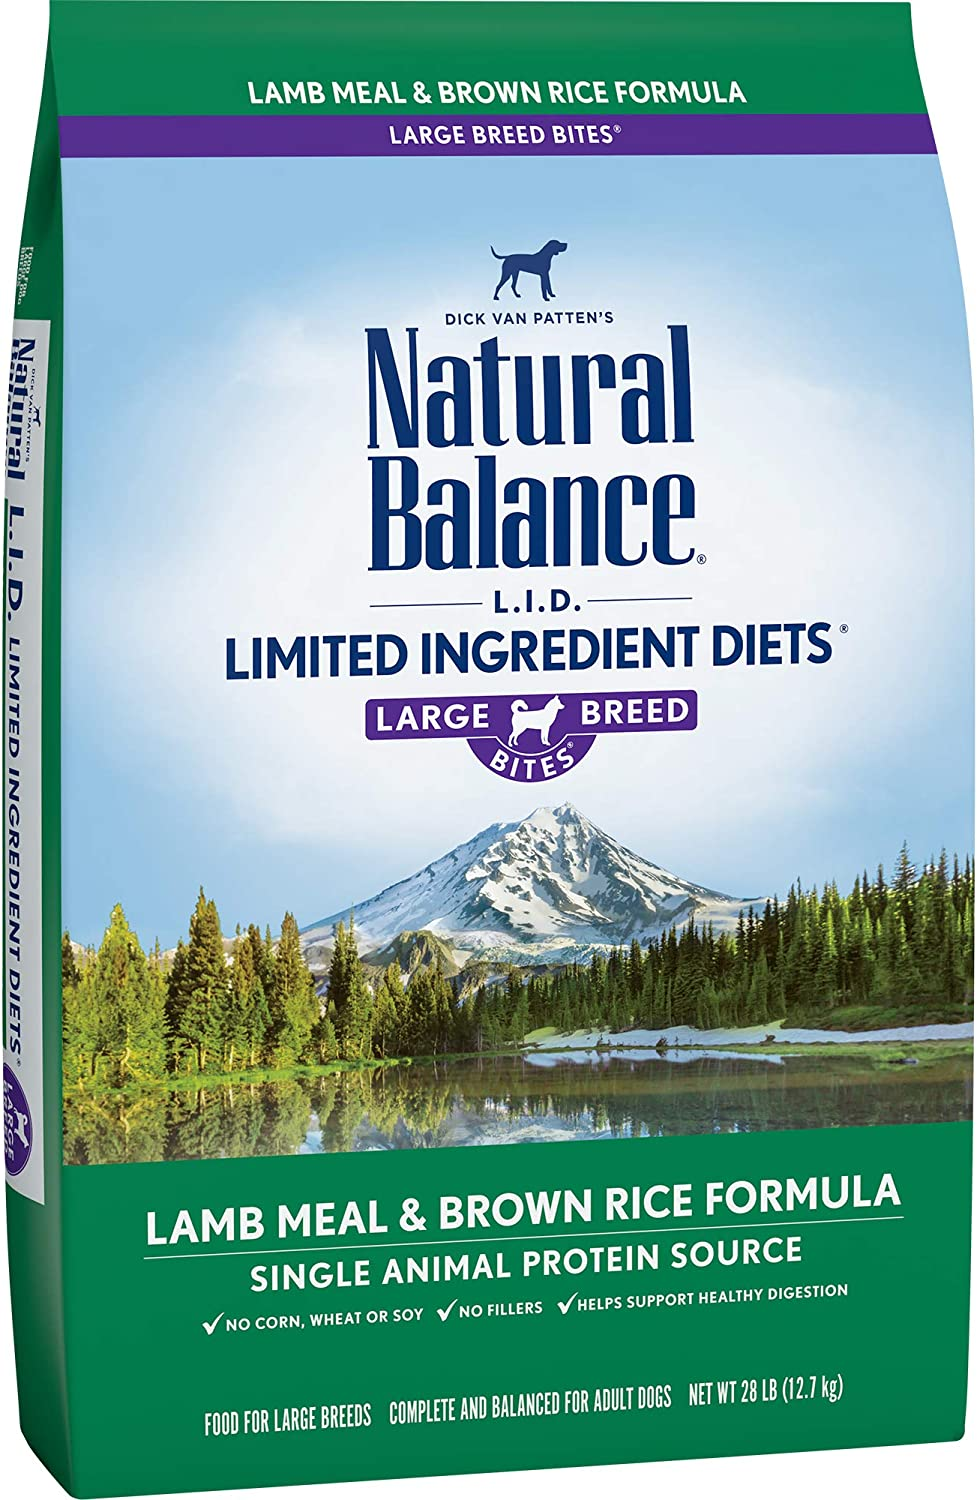 Natural Balance Large Breed L.I.D. Limited Ingredient Diets Lamb Meal & Brown Rice Formula Dry Dog Food, 28Pound